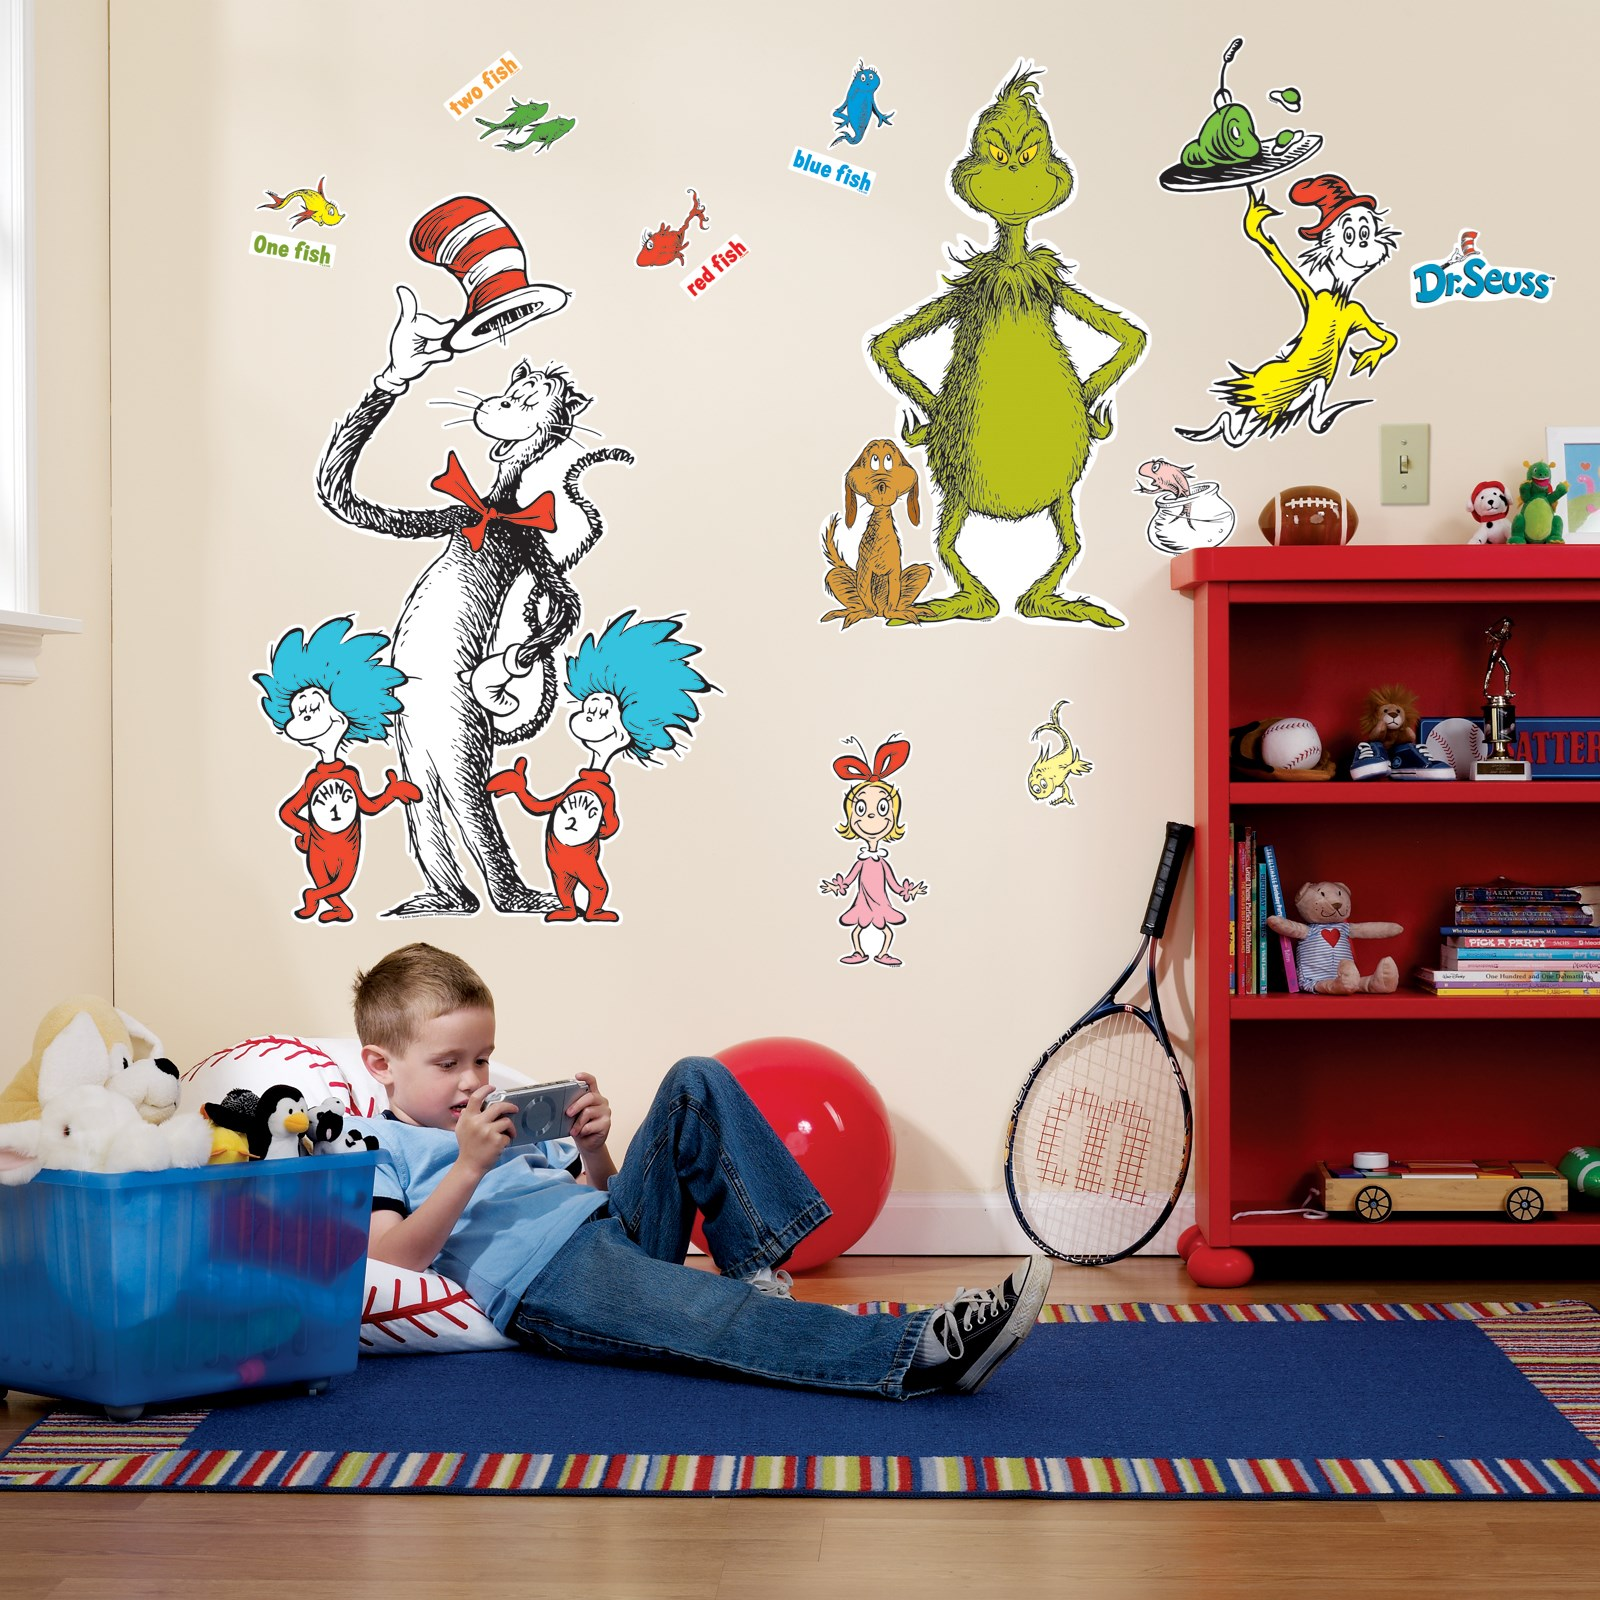 Dr seuss giant wall decals for Dr seuss wall mural